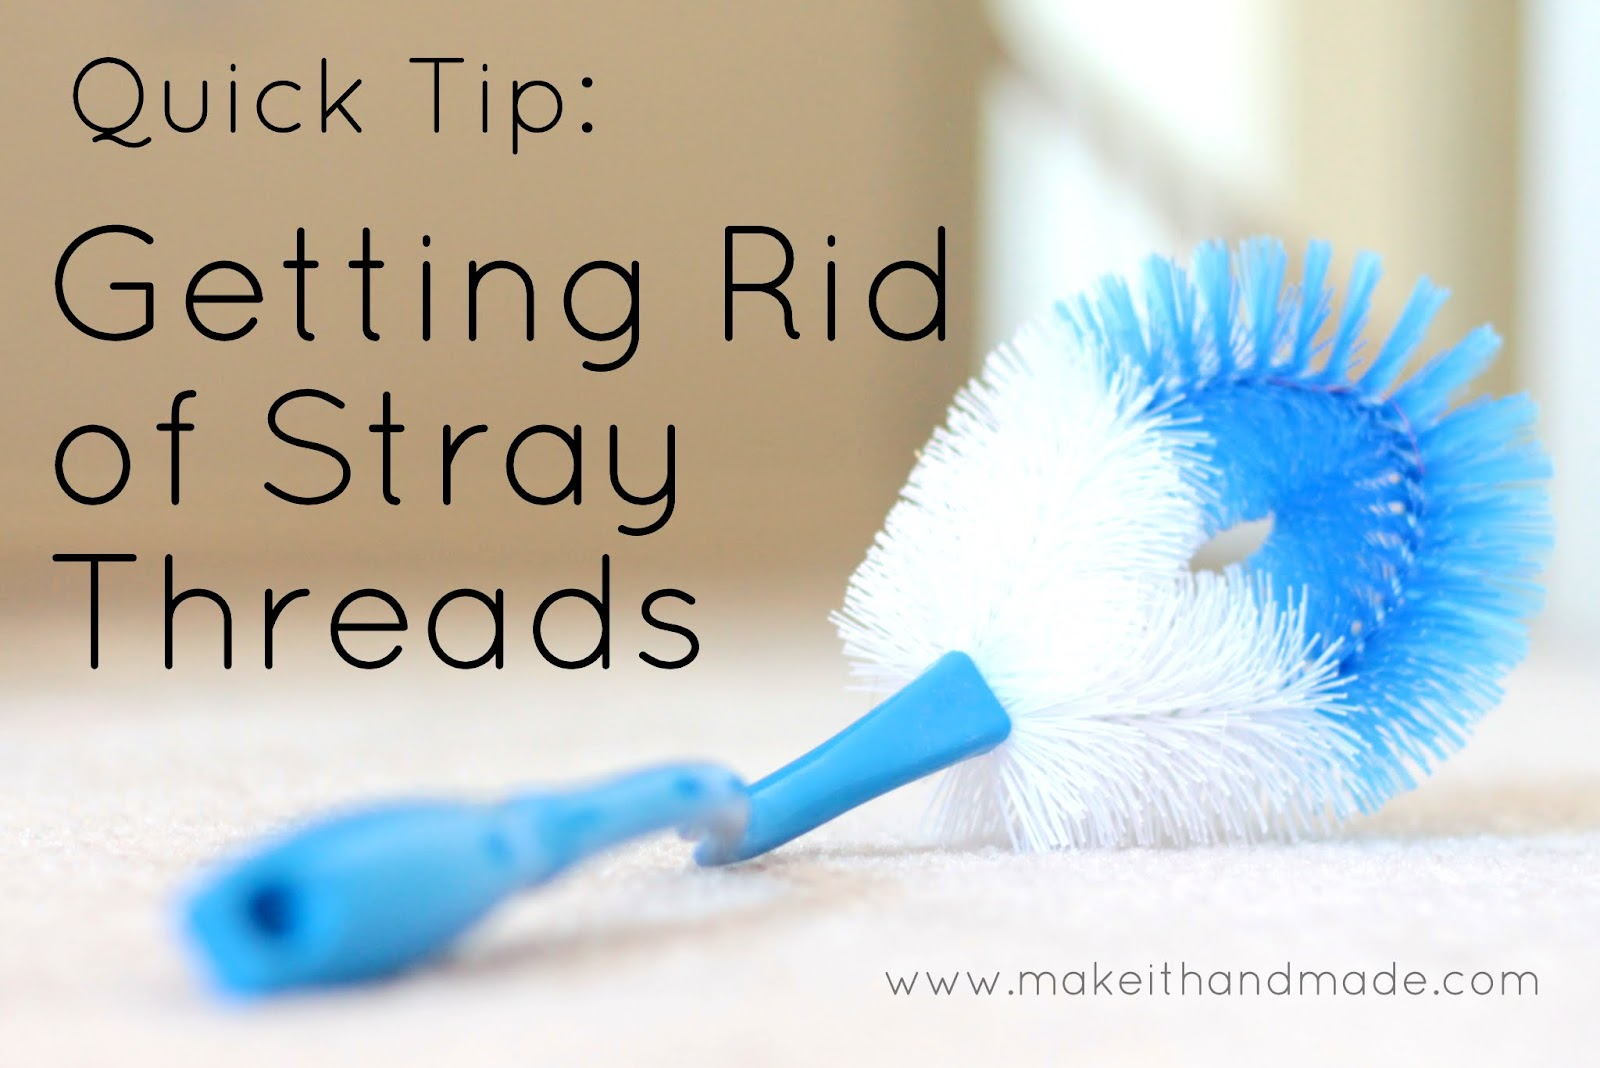 Sewing Quick Tip: Get Rid of Stray Threads With a Toilet Brush